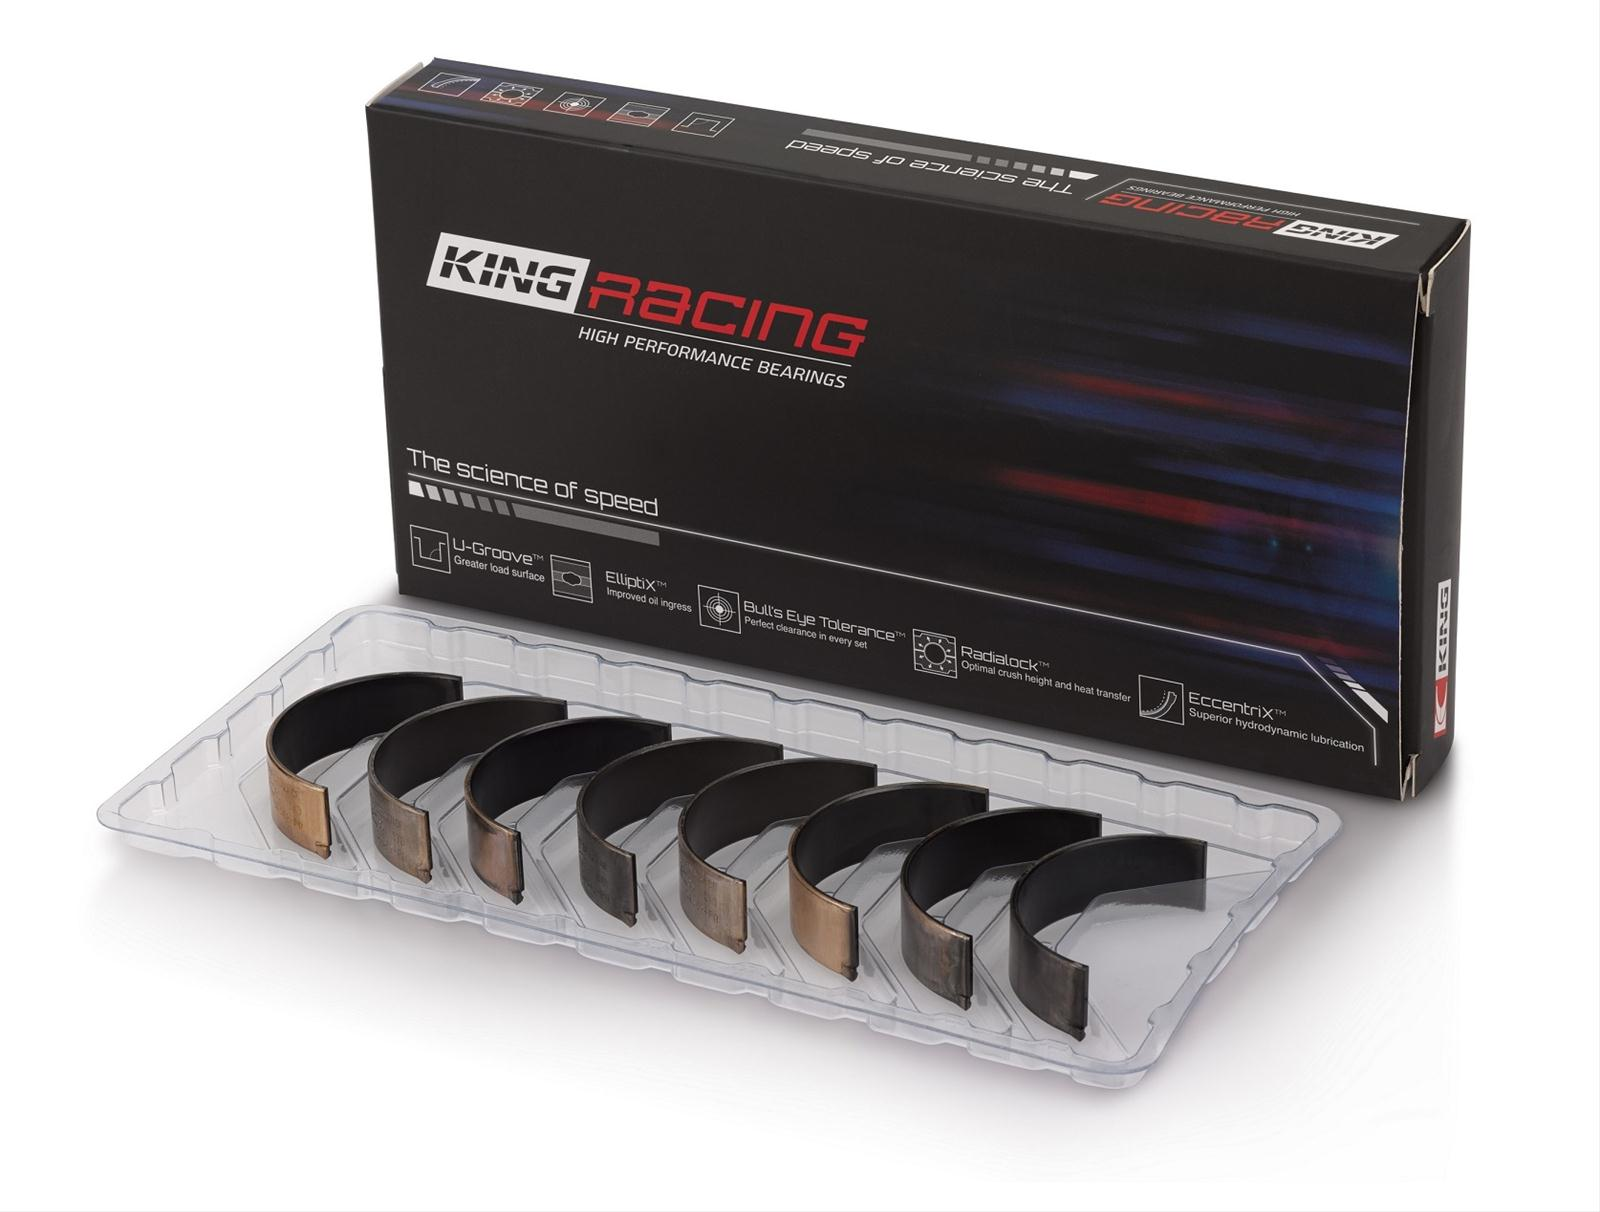 King Racing 1.8T Main Bearing Set (standard size)